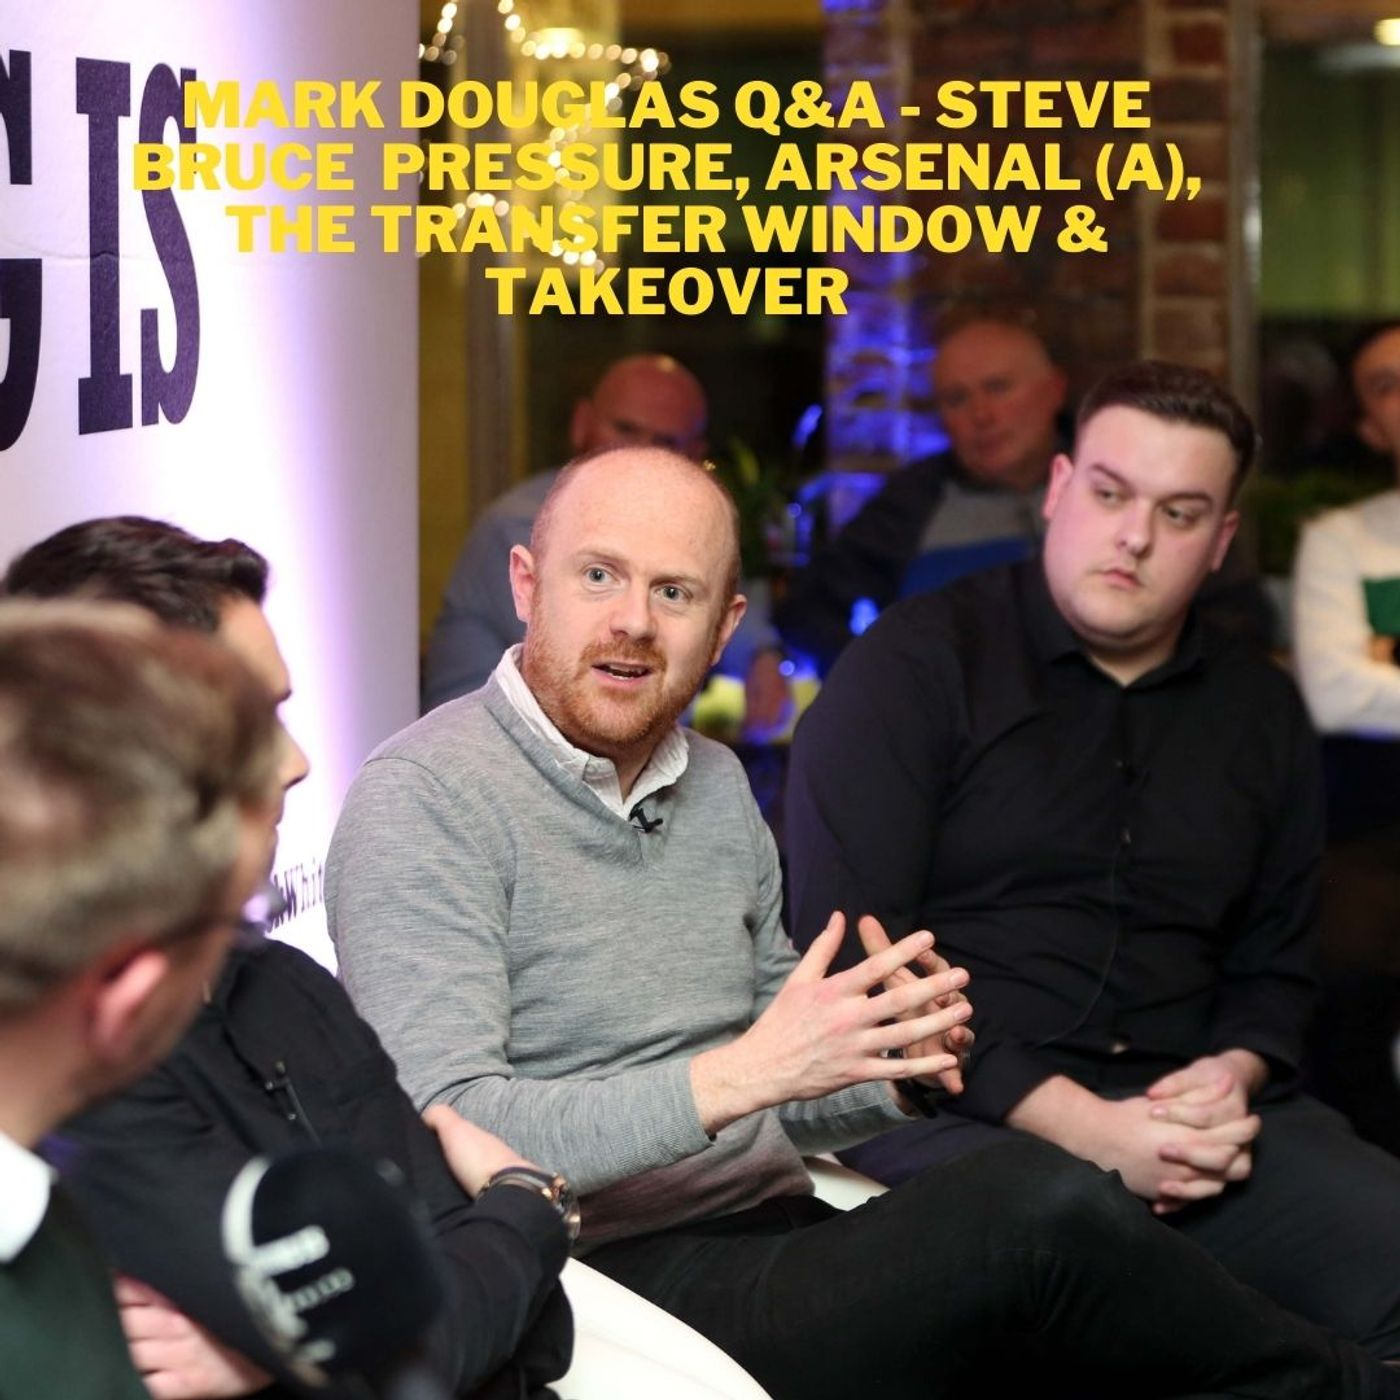 Is Steve Bruce the man to take NUFC forward? Is he under pressure - Q&A session with Mark Douglas